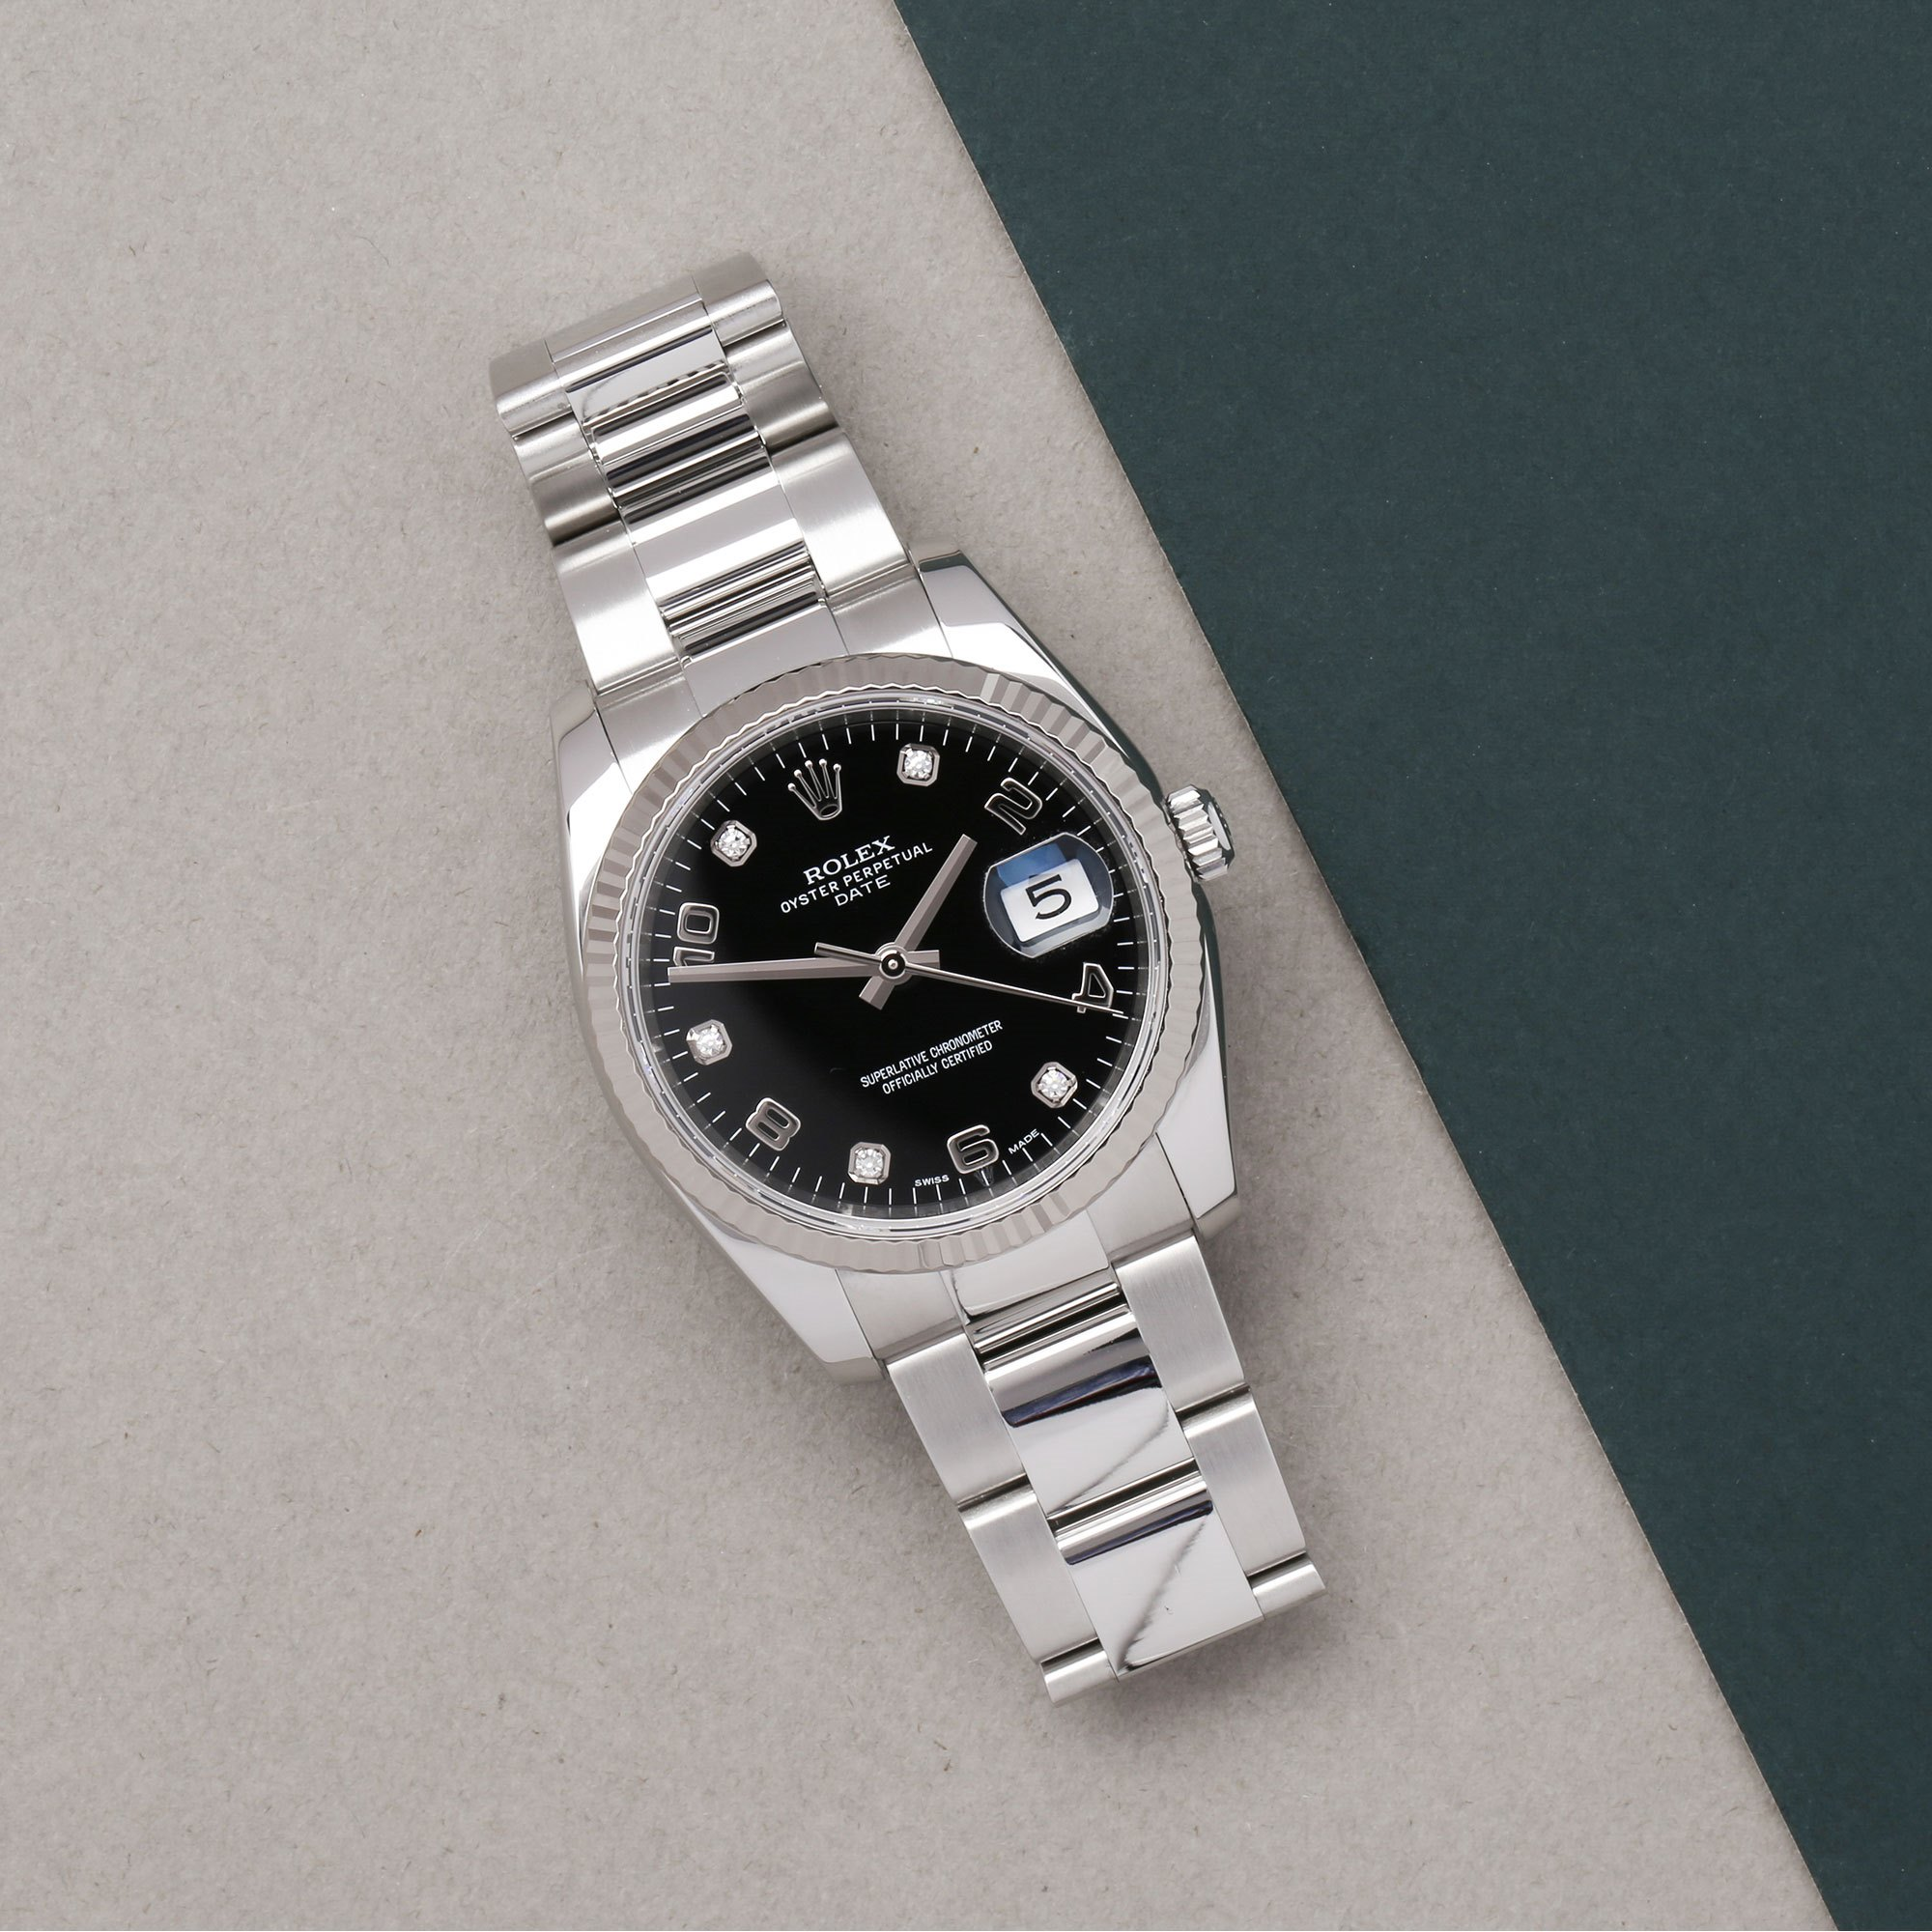 Rolex Oyster Perpetual Date Diamond 18K White Gold & Stainless Steel 115234